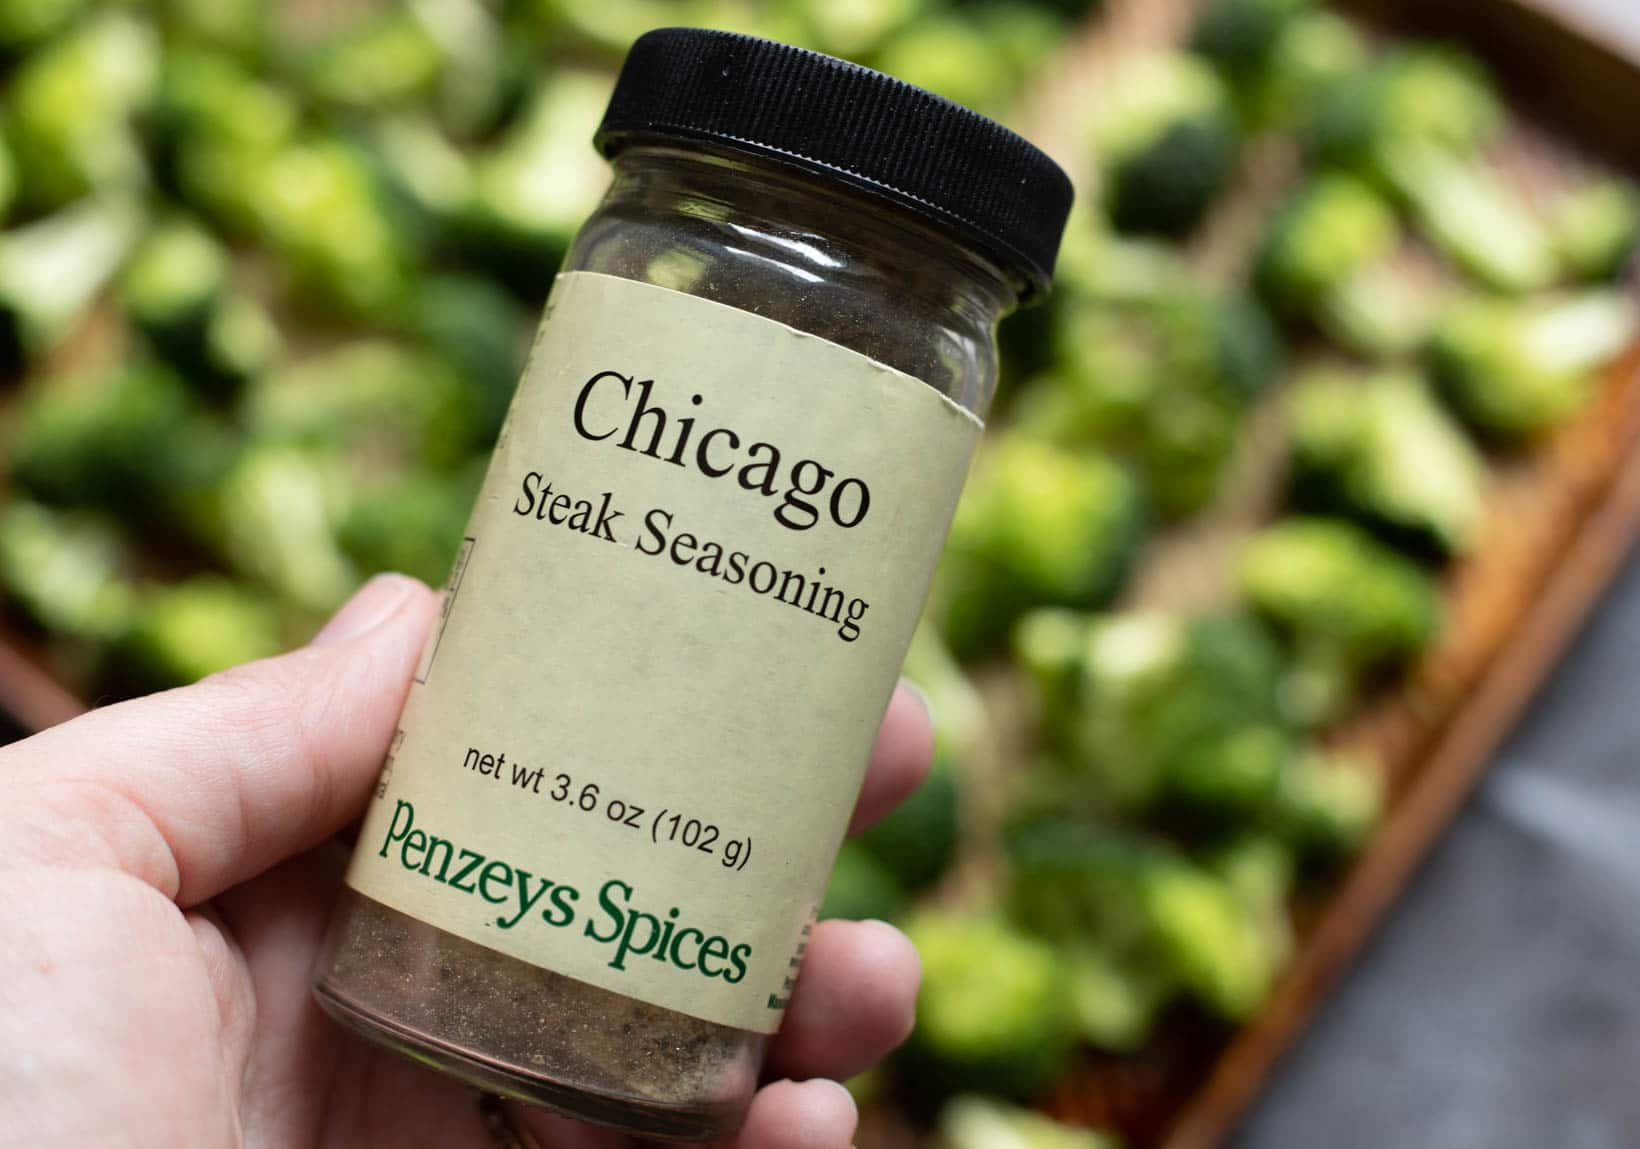 Chicago Steak Seasoning by Penzey's Spices - the perfect seasoning for roasted broccoli